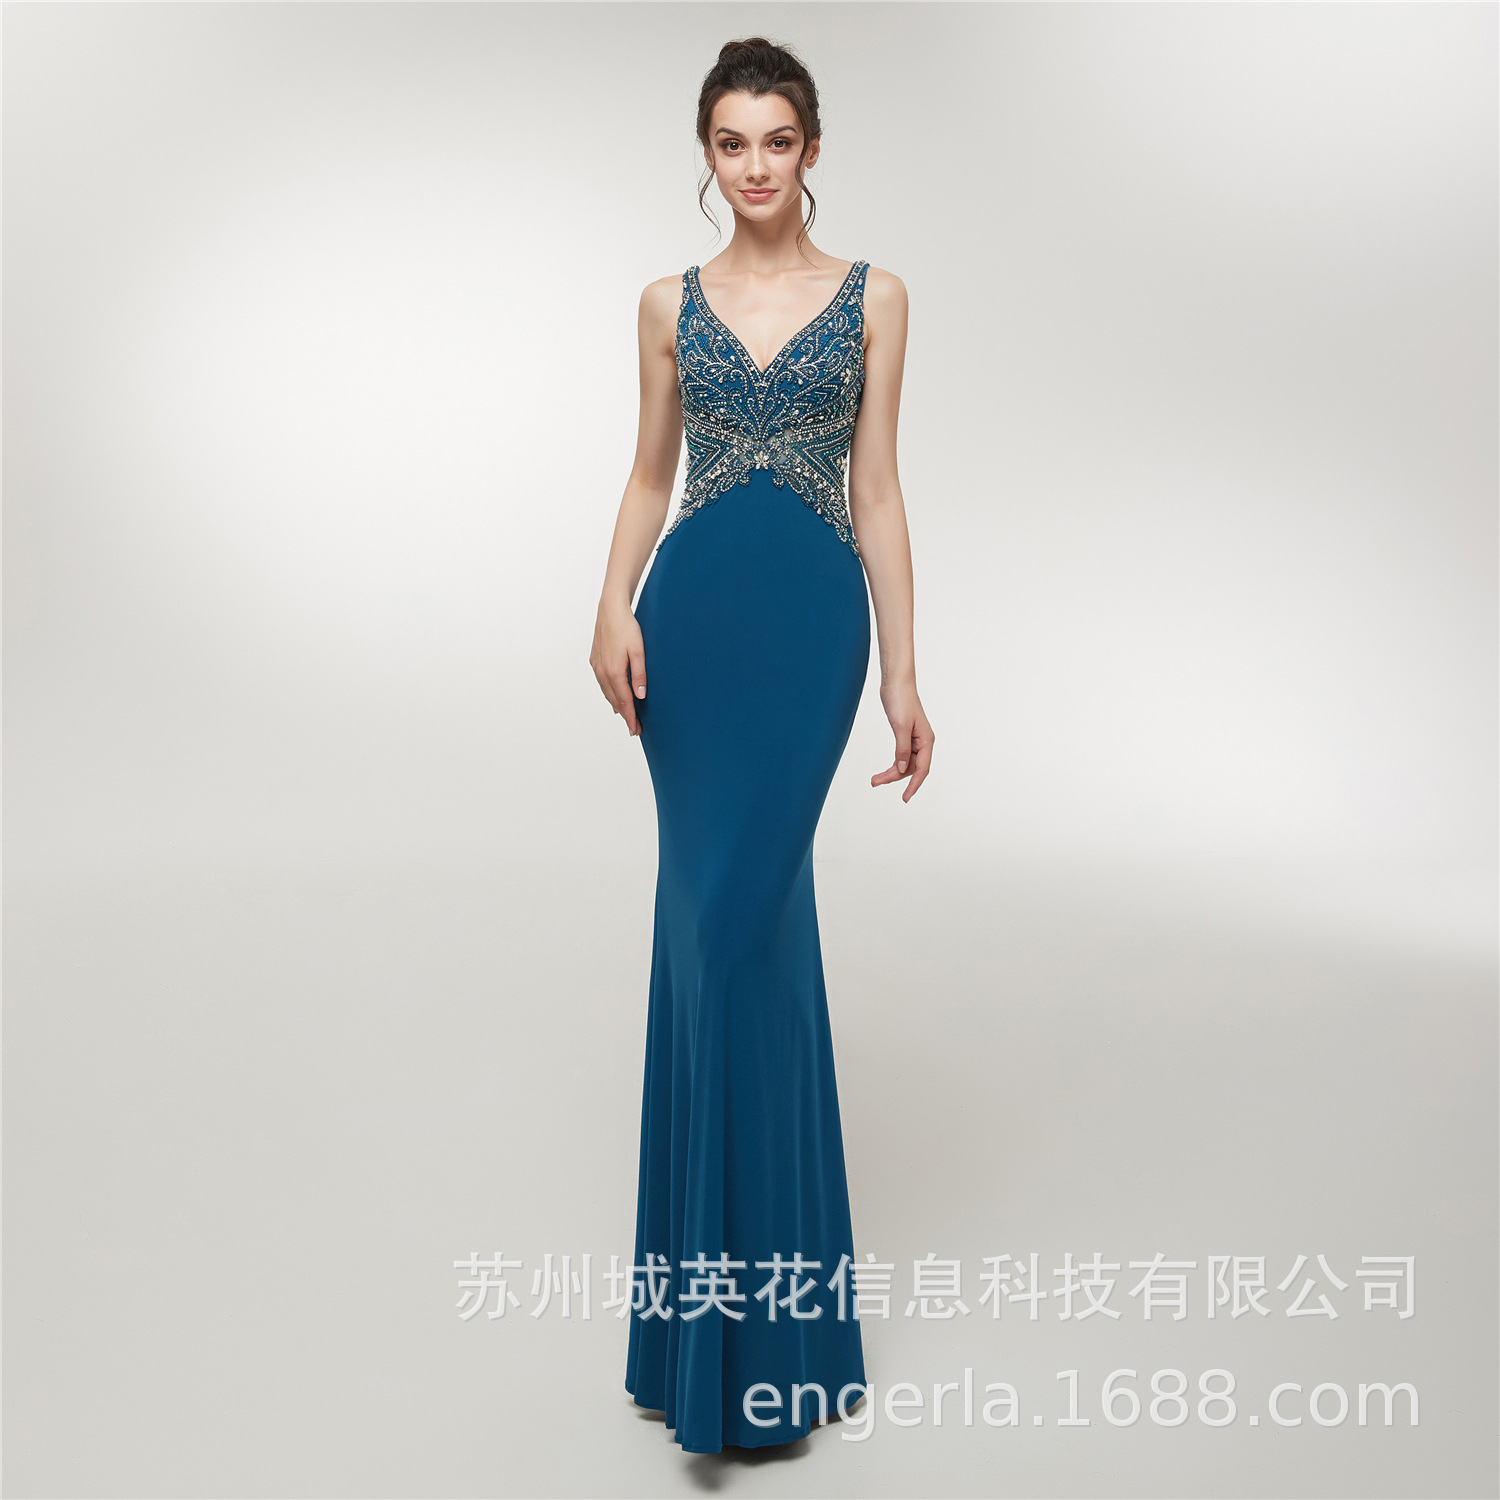 Silver Straps Evening Dresses Long Crystals Beaded Formal Gown Mermaid Lace Up Back Robe De Soiree